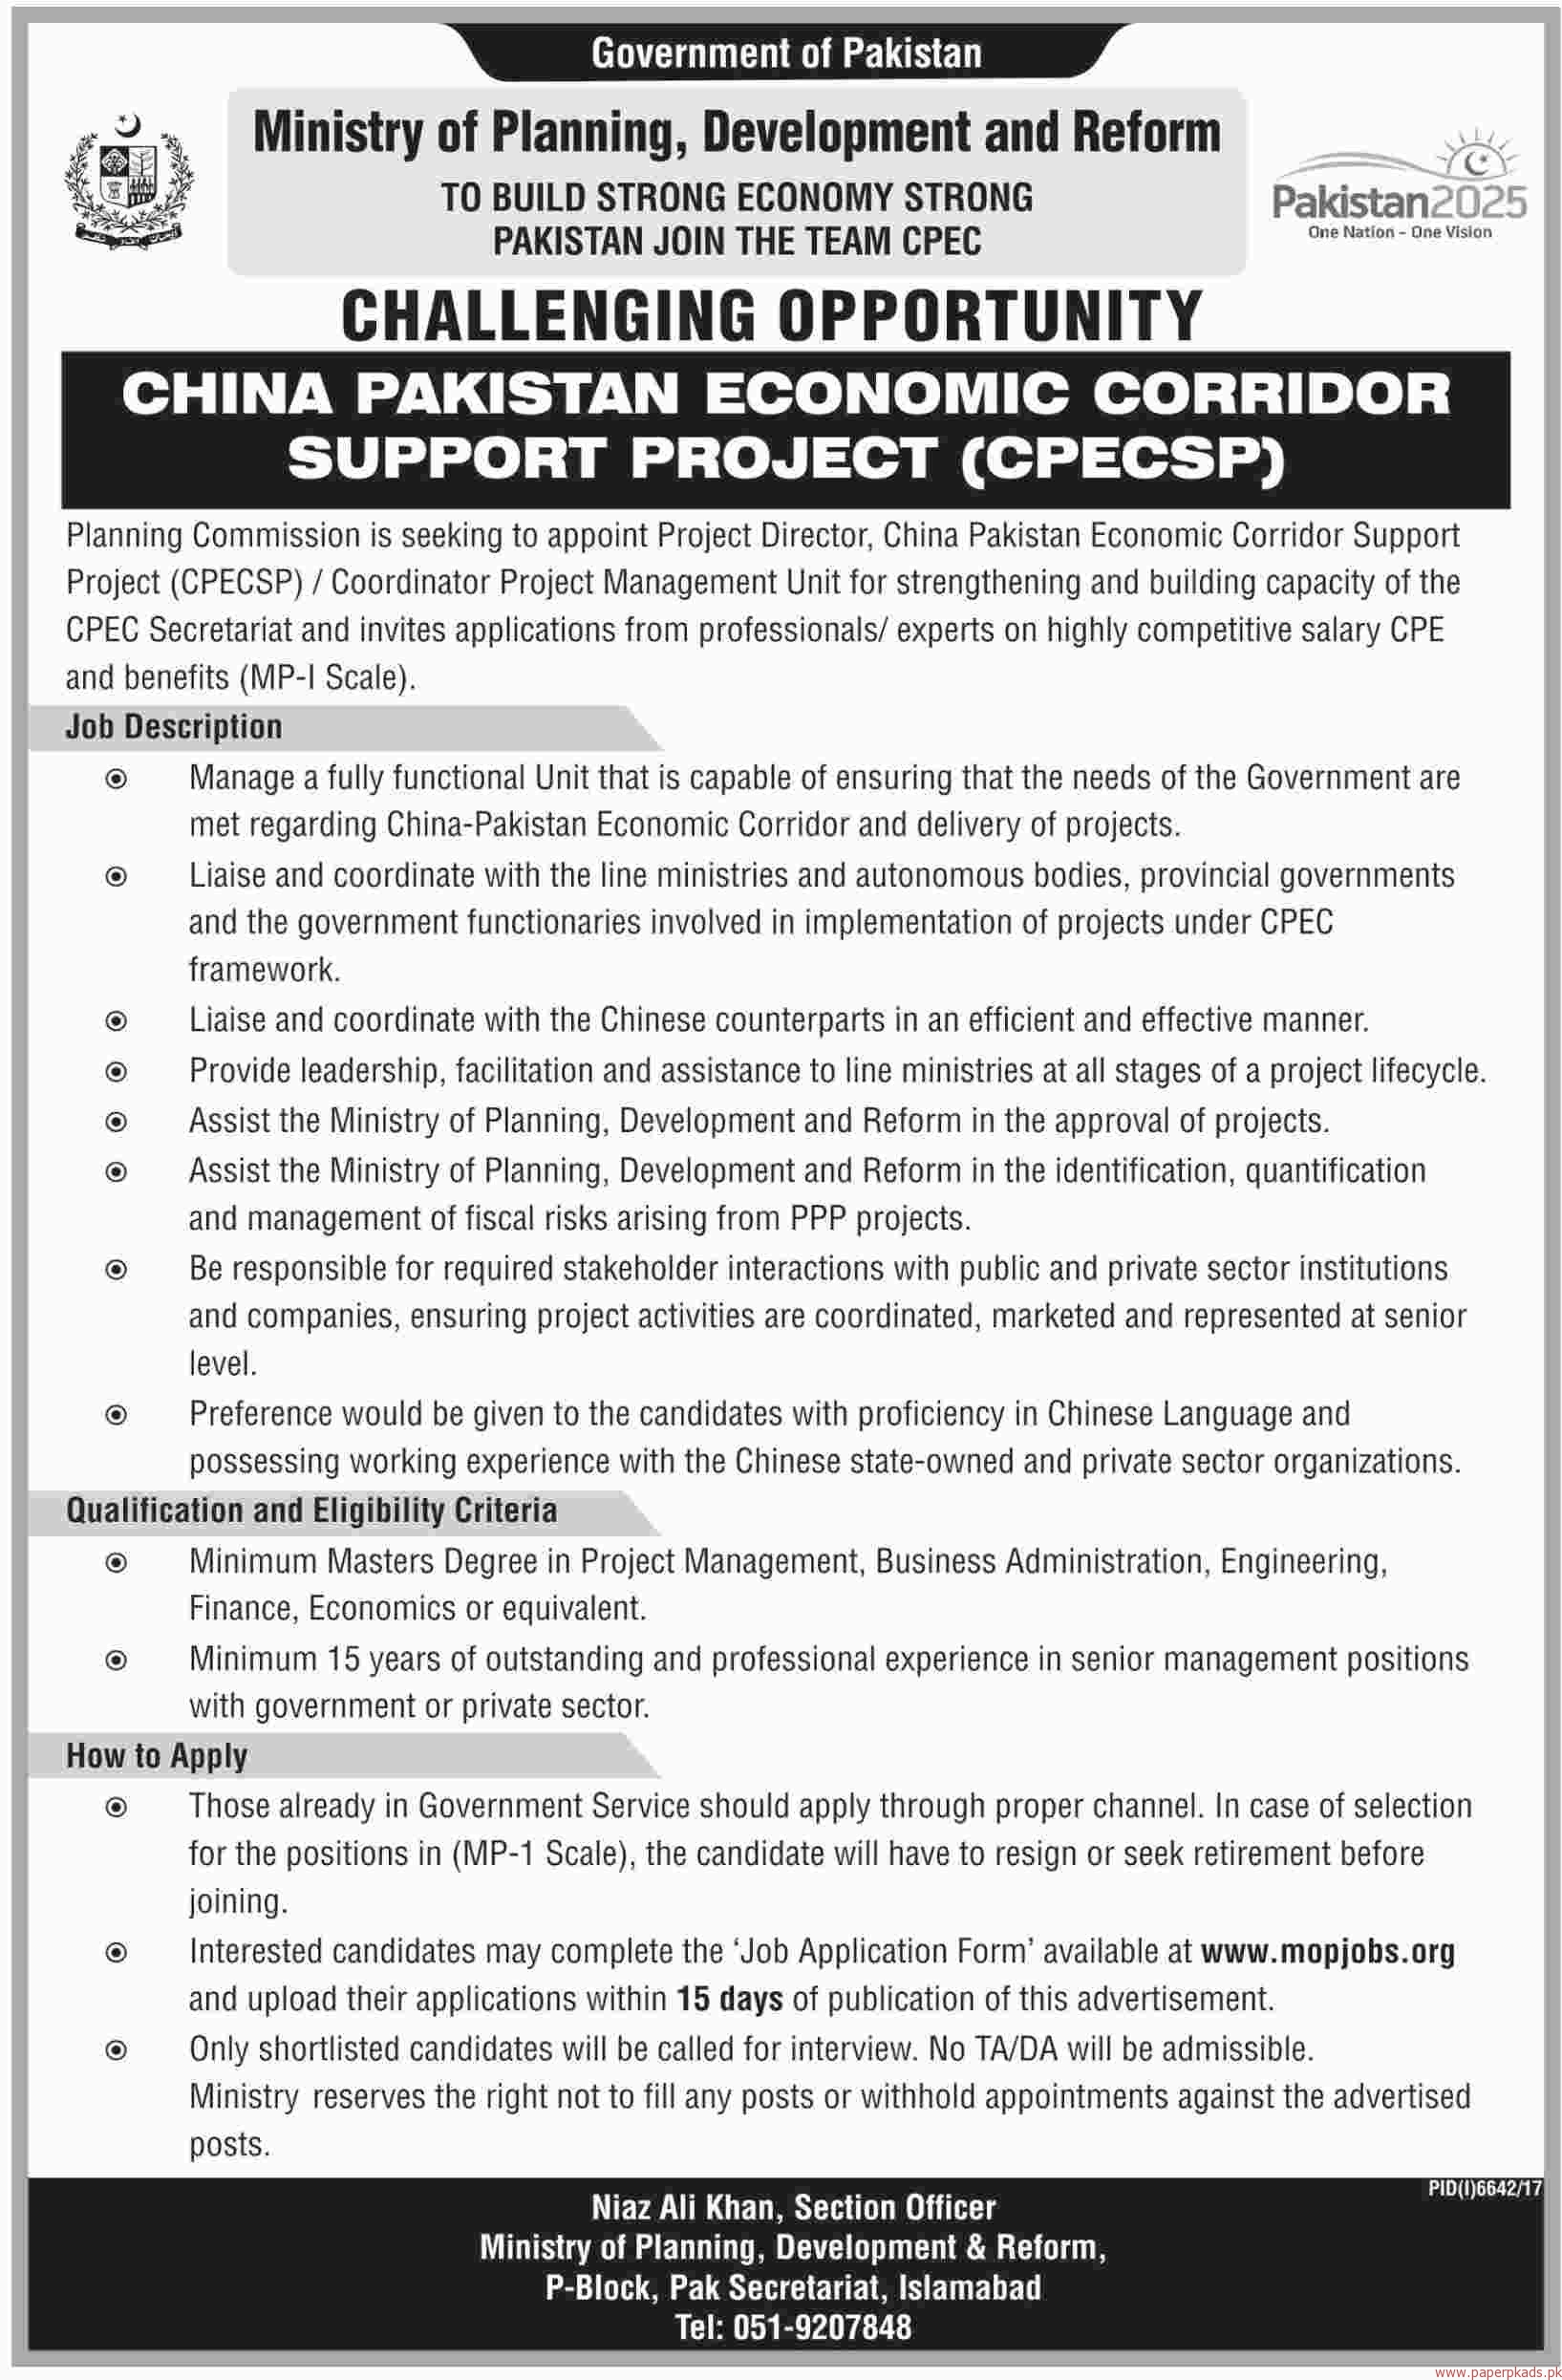 Ministry of Planning Development & Reform Jobs 2018 Latest